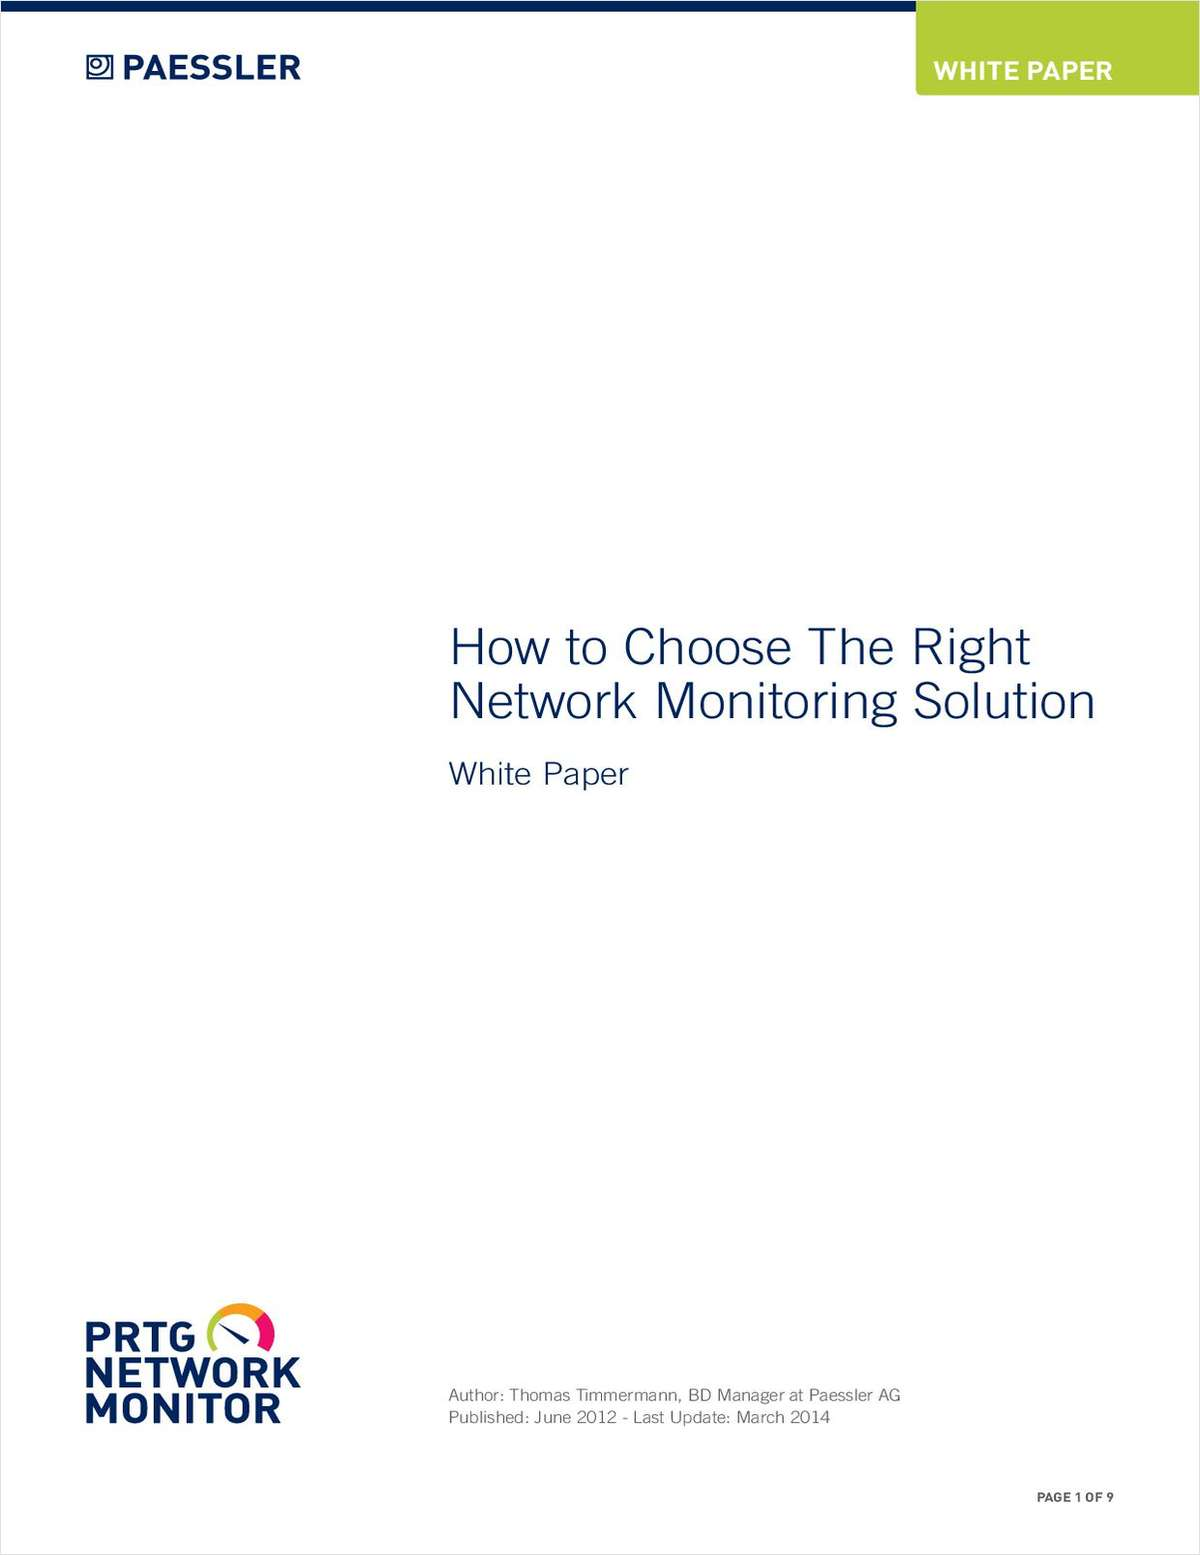 How To Choose The Right Network Monitoring Solution